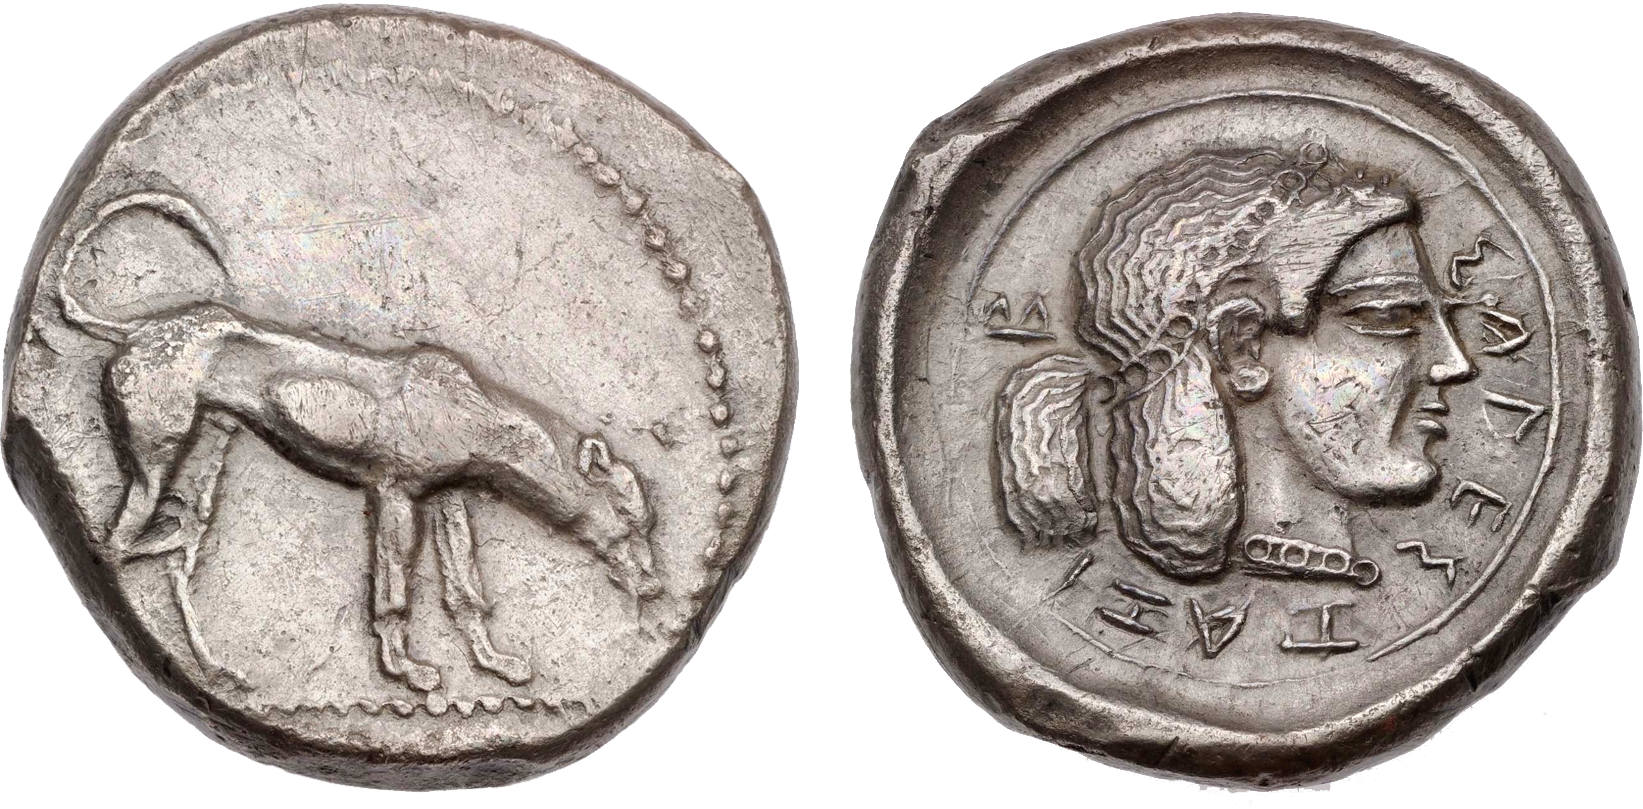 Didrachm of Segesta, AR, 8.70 g, 20 mm, Sicily, 480-460 BC. Dog standing to right on dotted line, head lowered. Beaded border. / Head of nymph Segesta to right; band in hair composed of row of circles between plain lines, a part of the hair drawn up and hanging out over band; similar row of circles between plain lines make up her necklace. Inscription in Greek. Plain border. Round incuse.